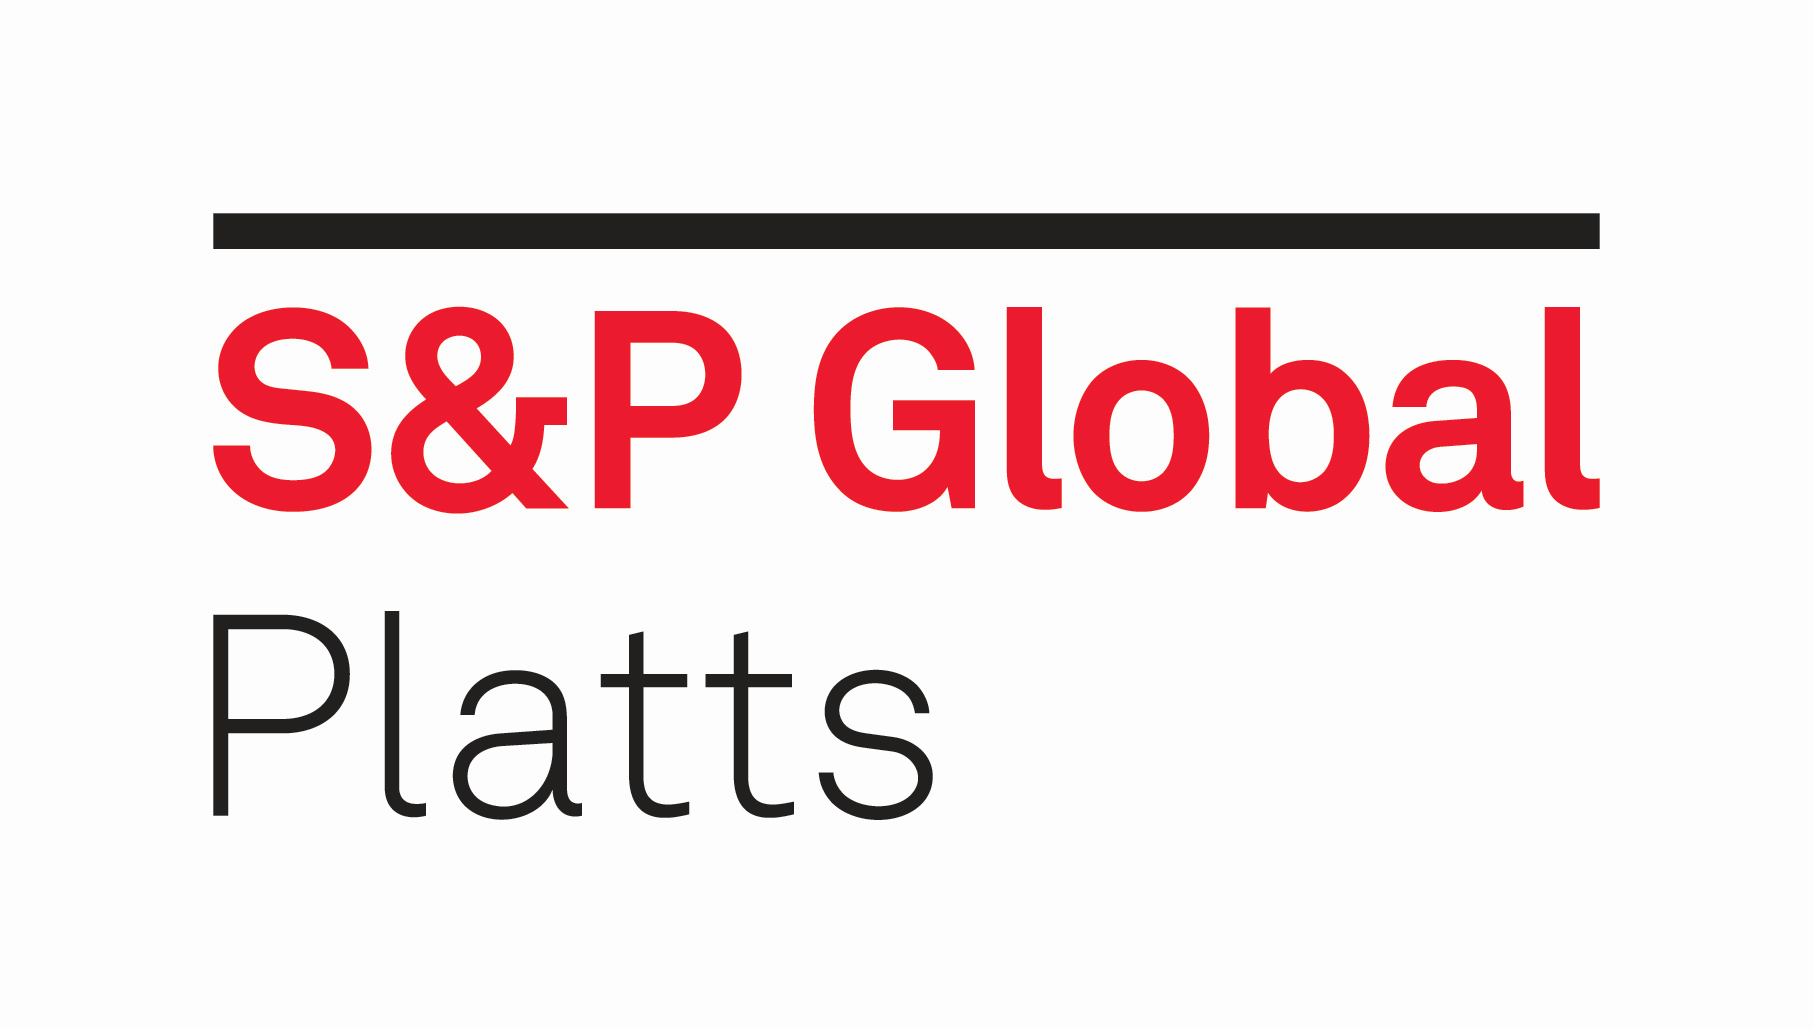 S&P Global Platts Logo in CMYK.png